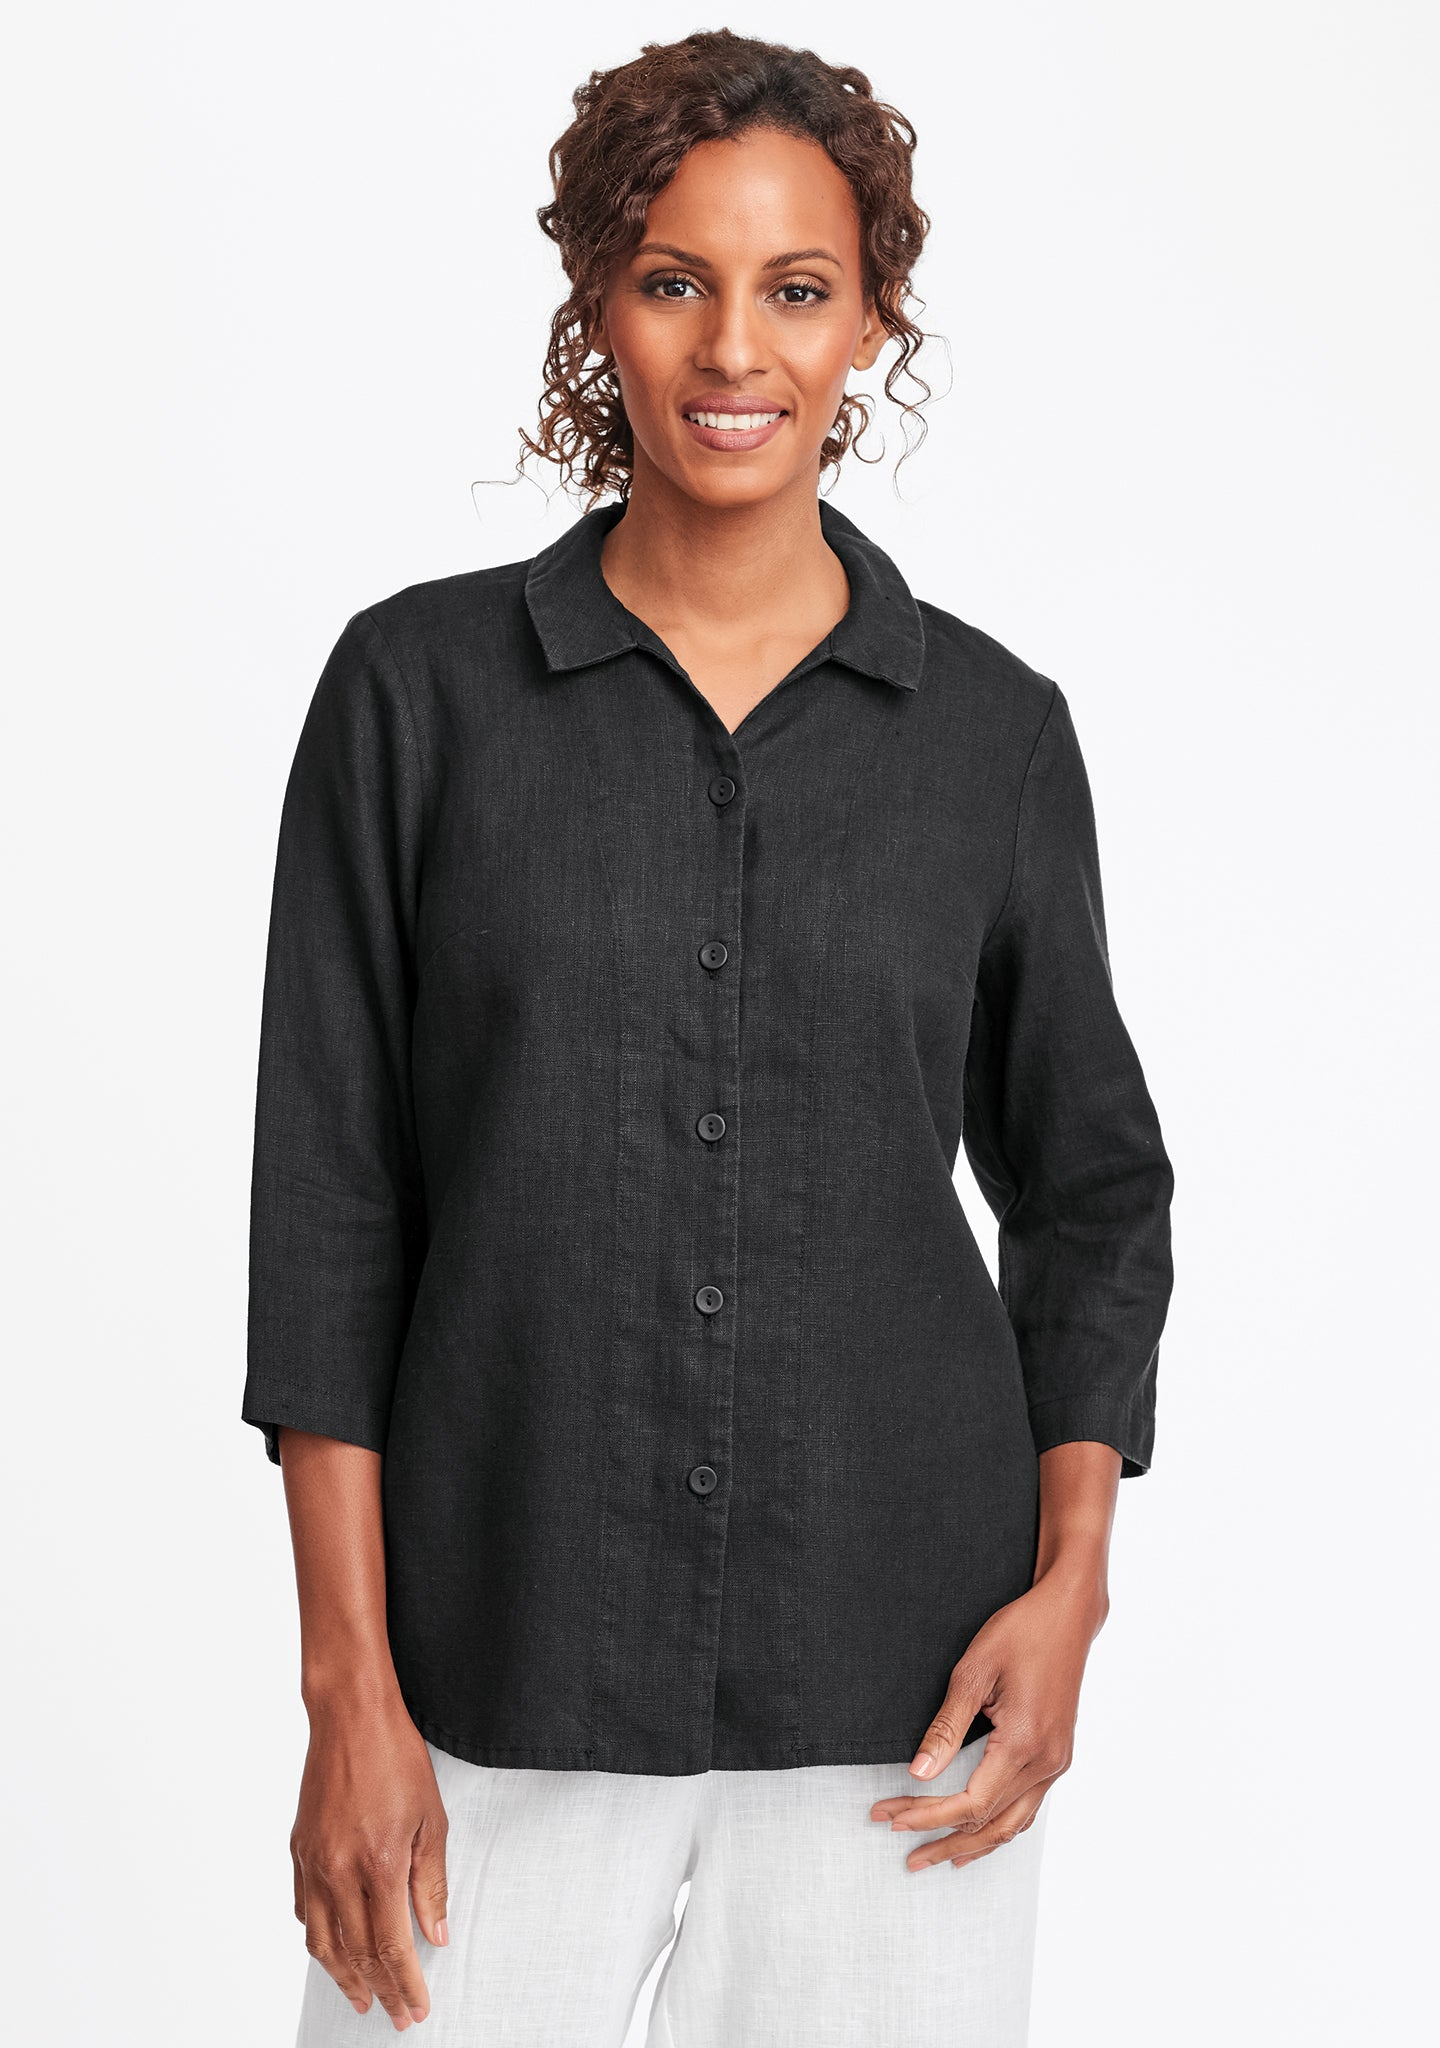 in-line blouse linen button down shirt black